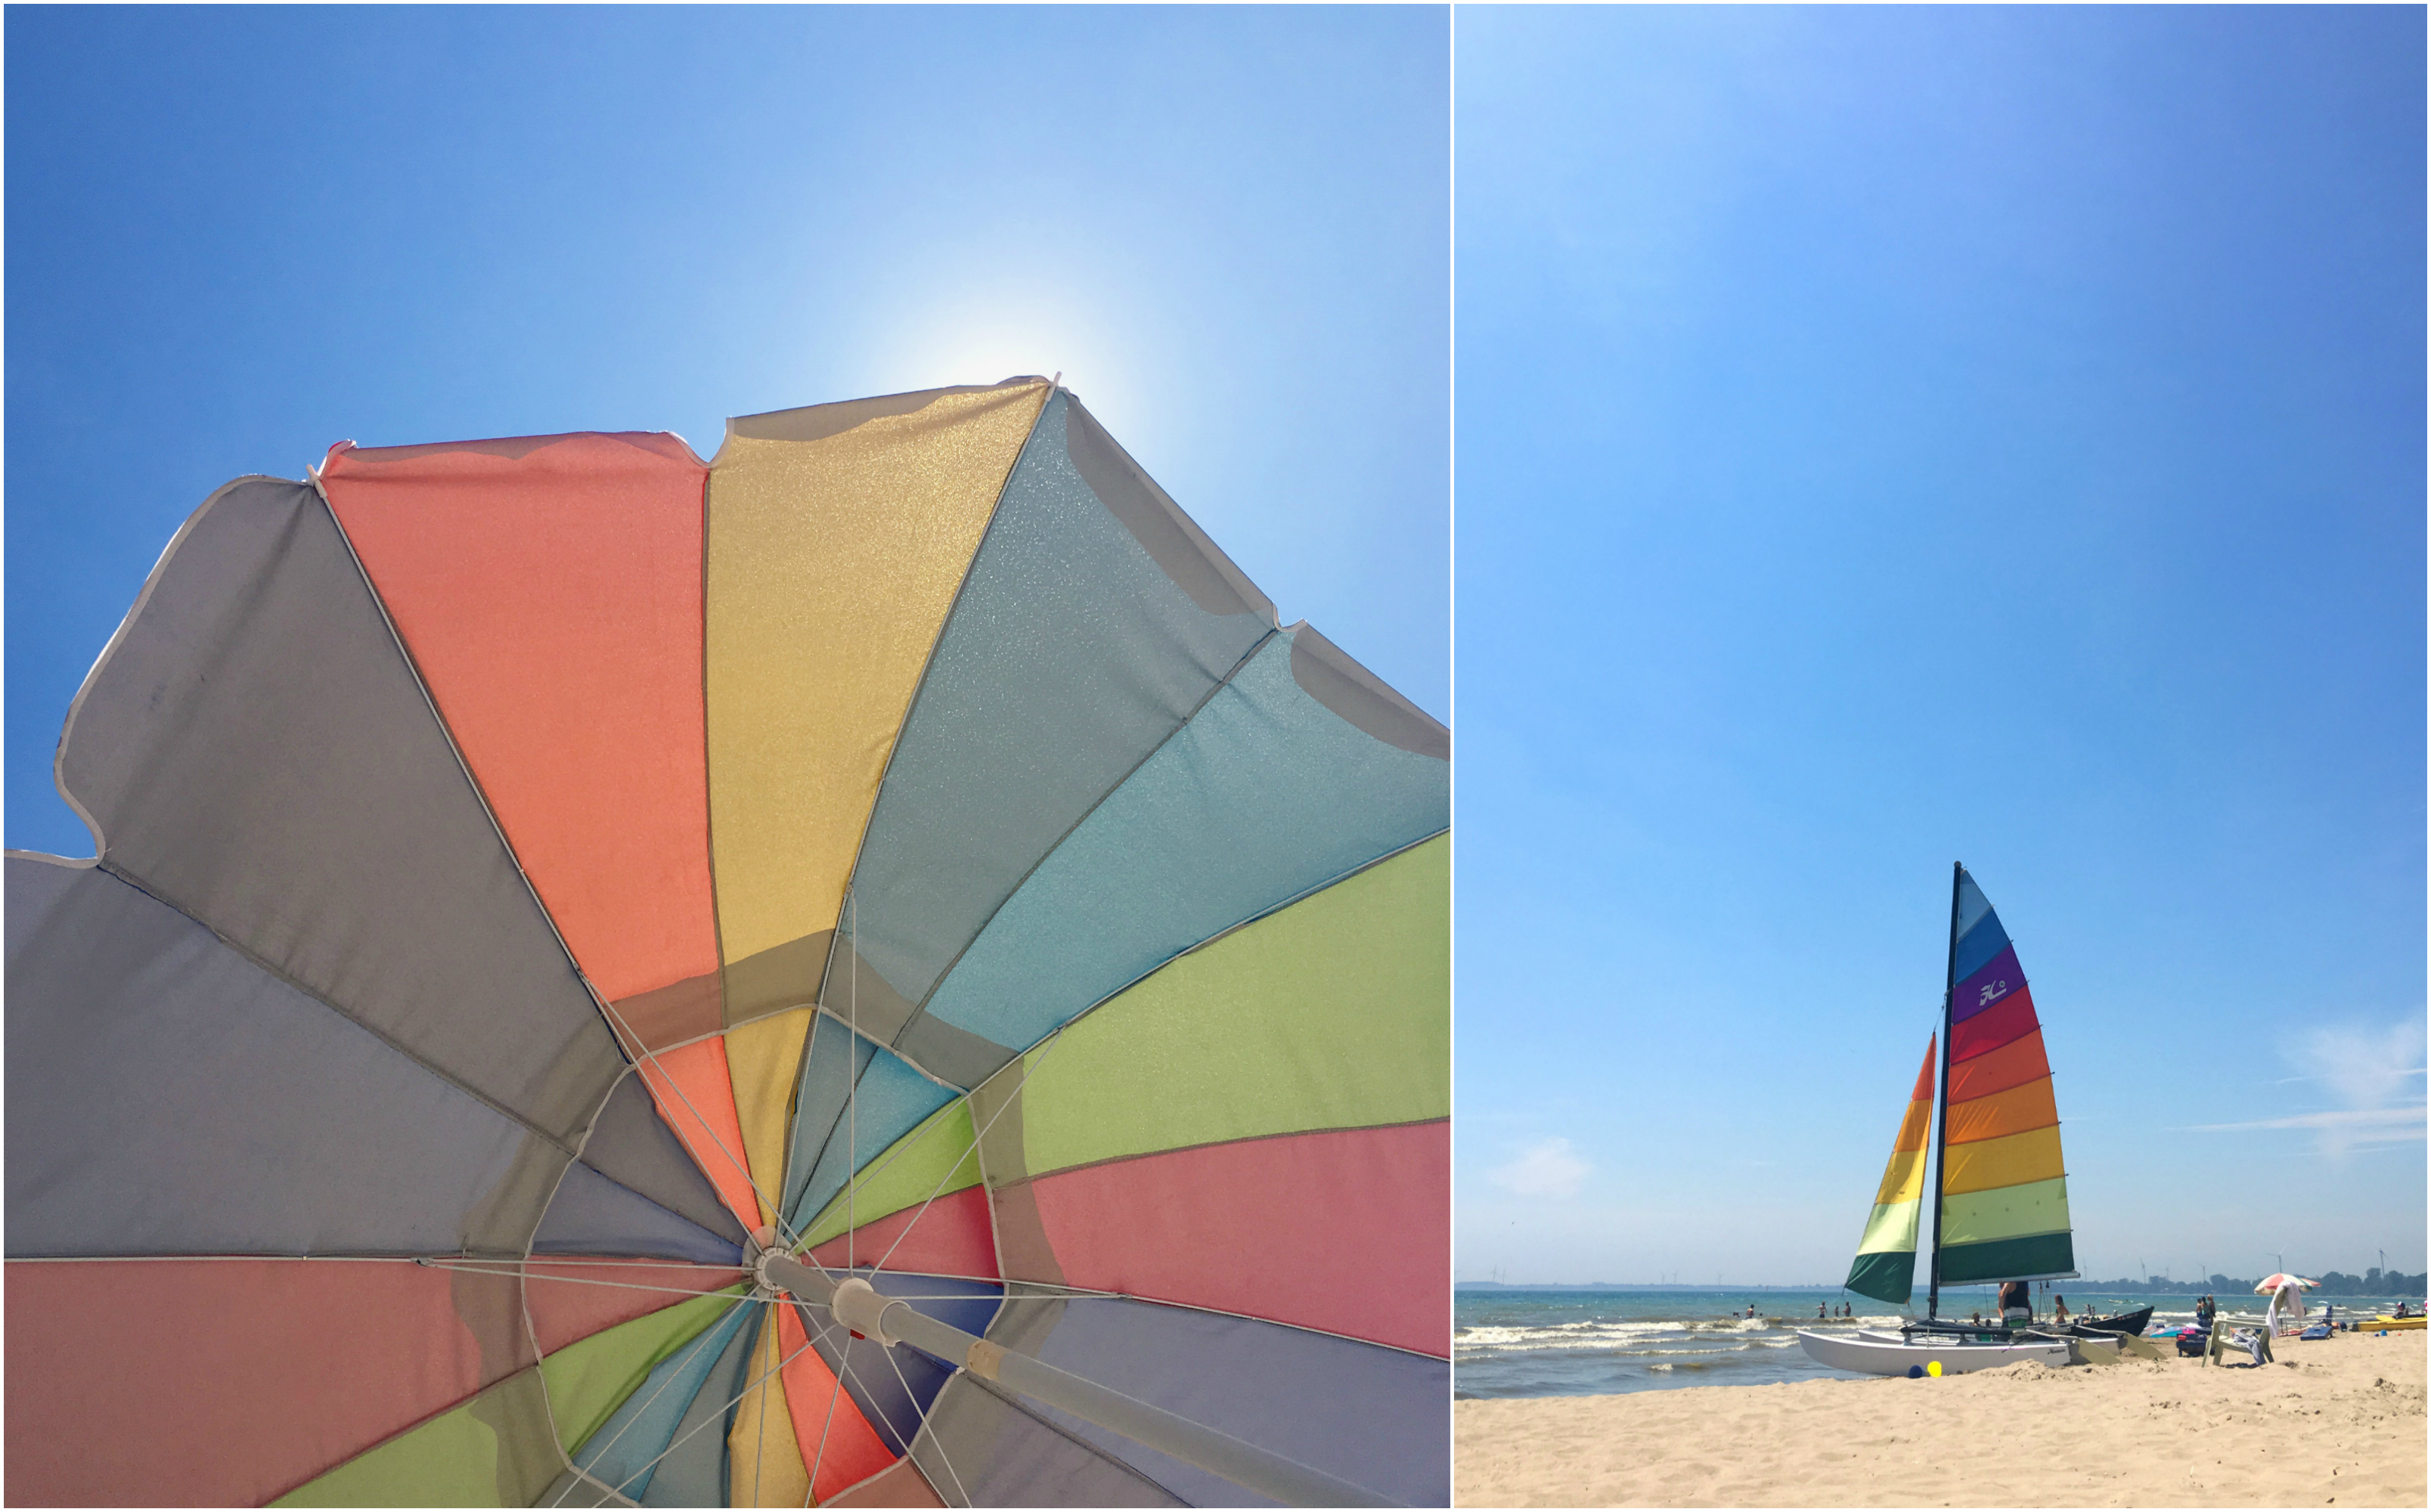 rainbow beach - sailboat and umbrella on the beach